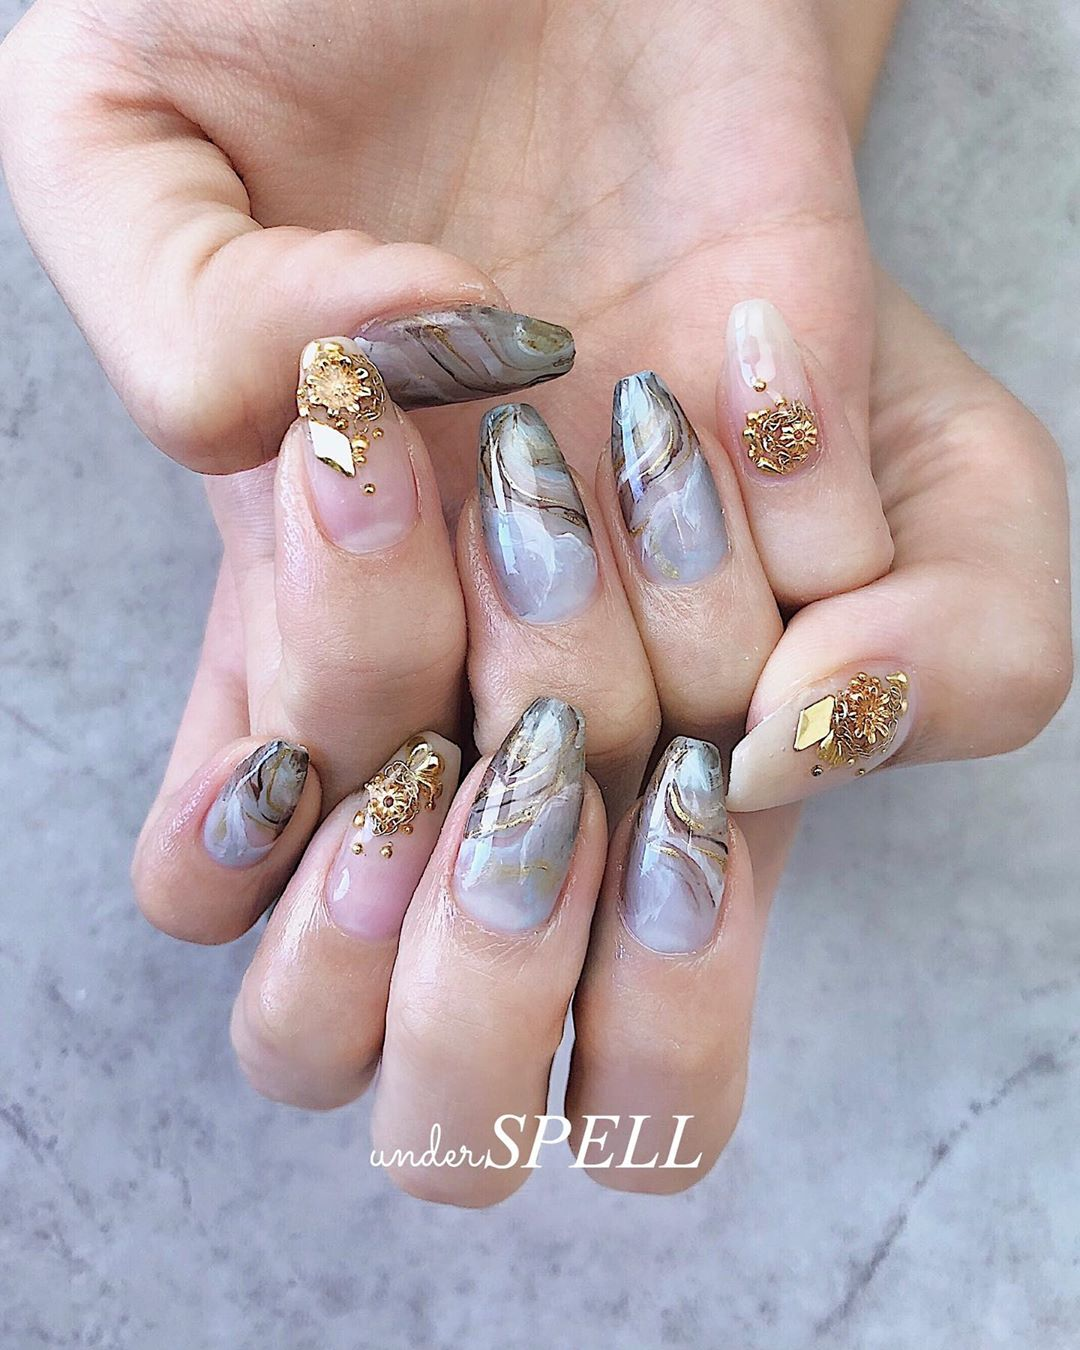 nuance nail